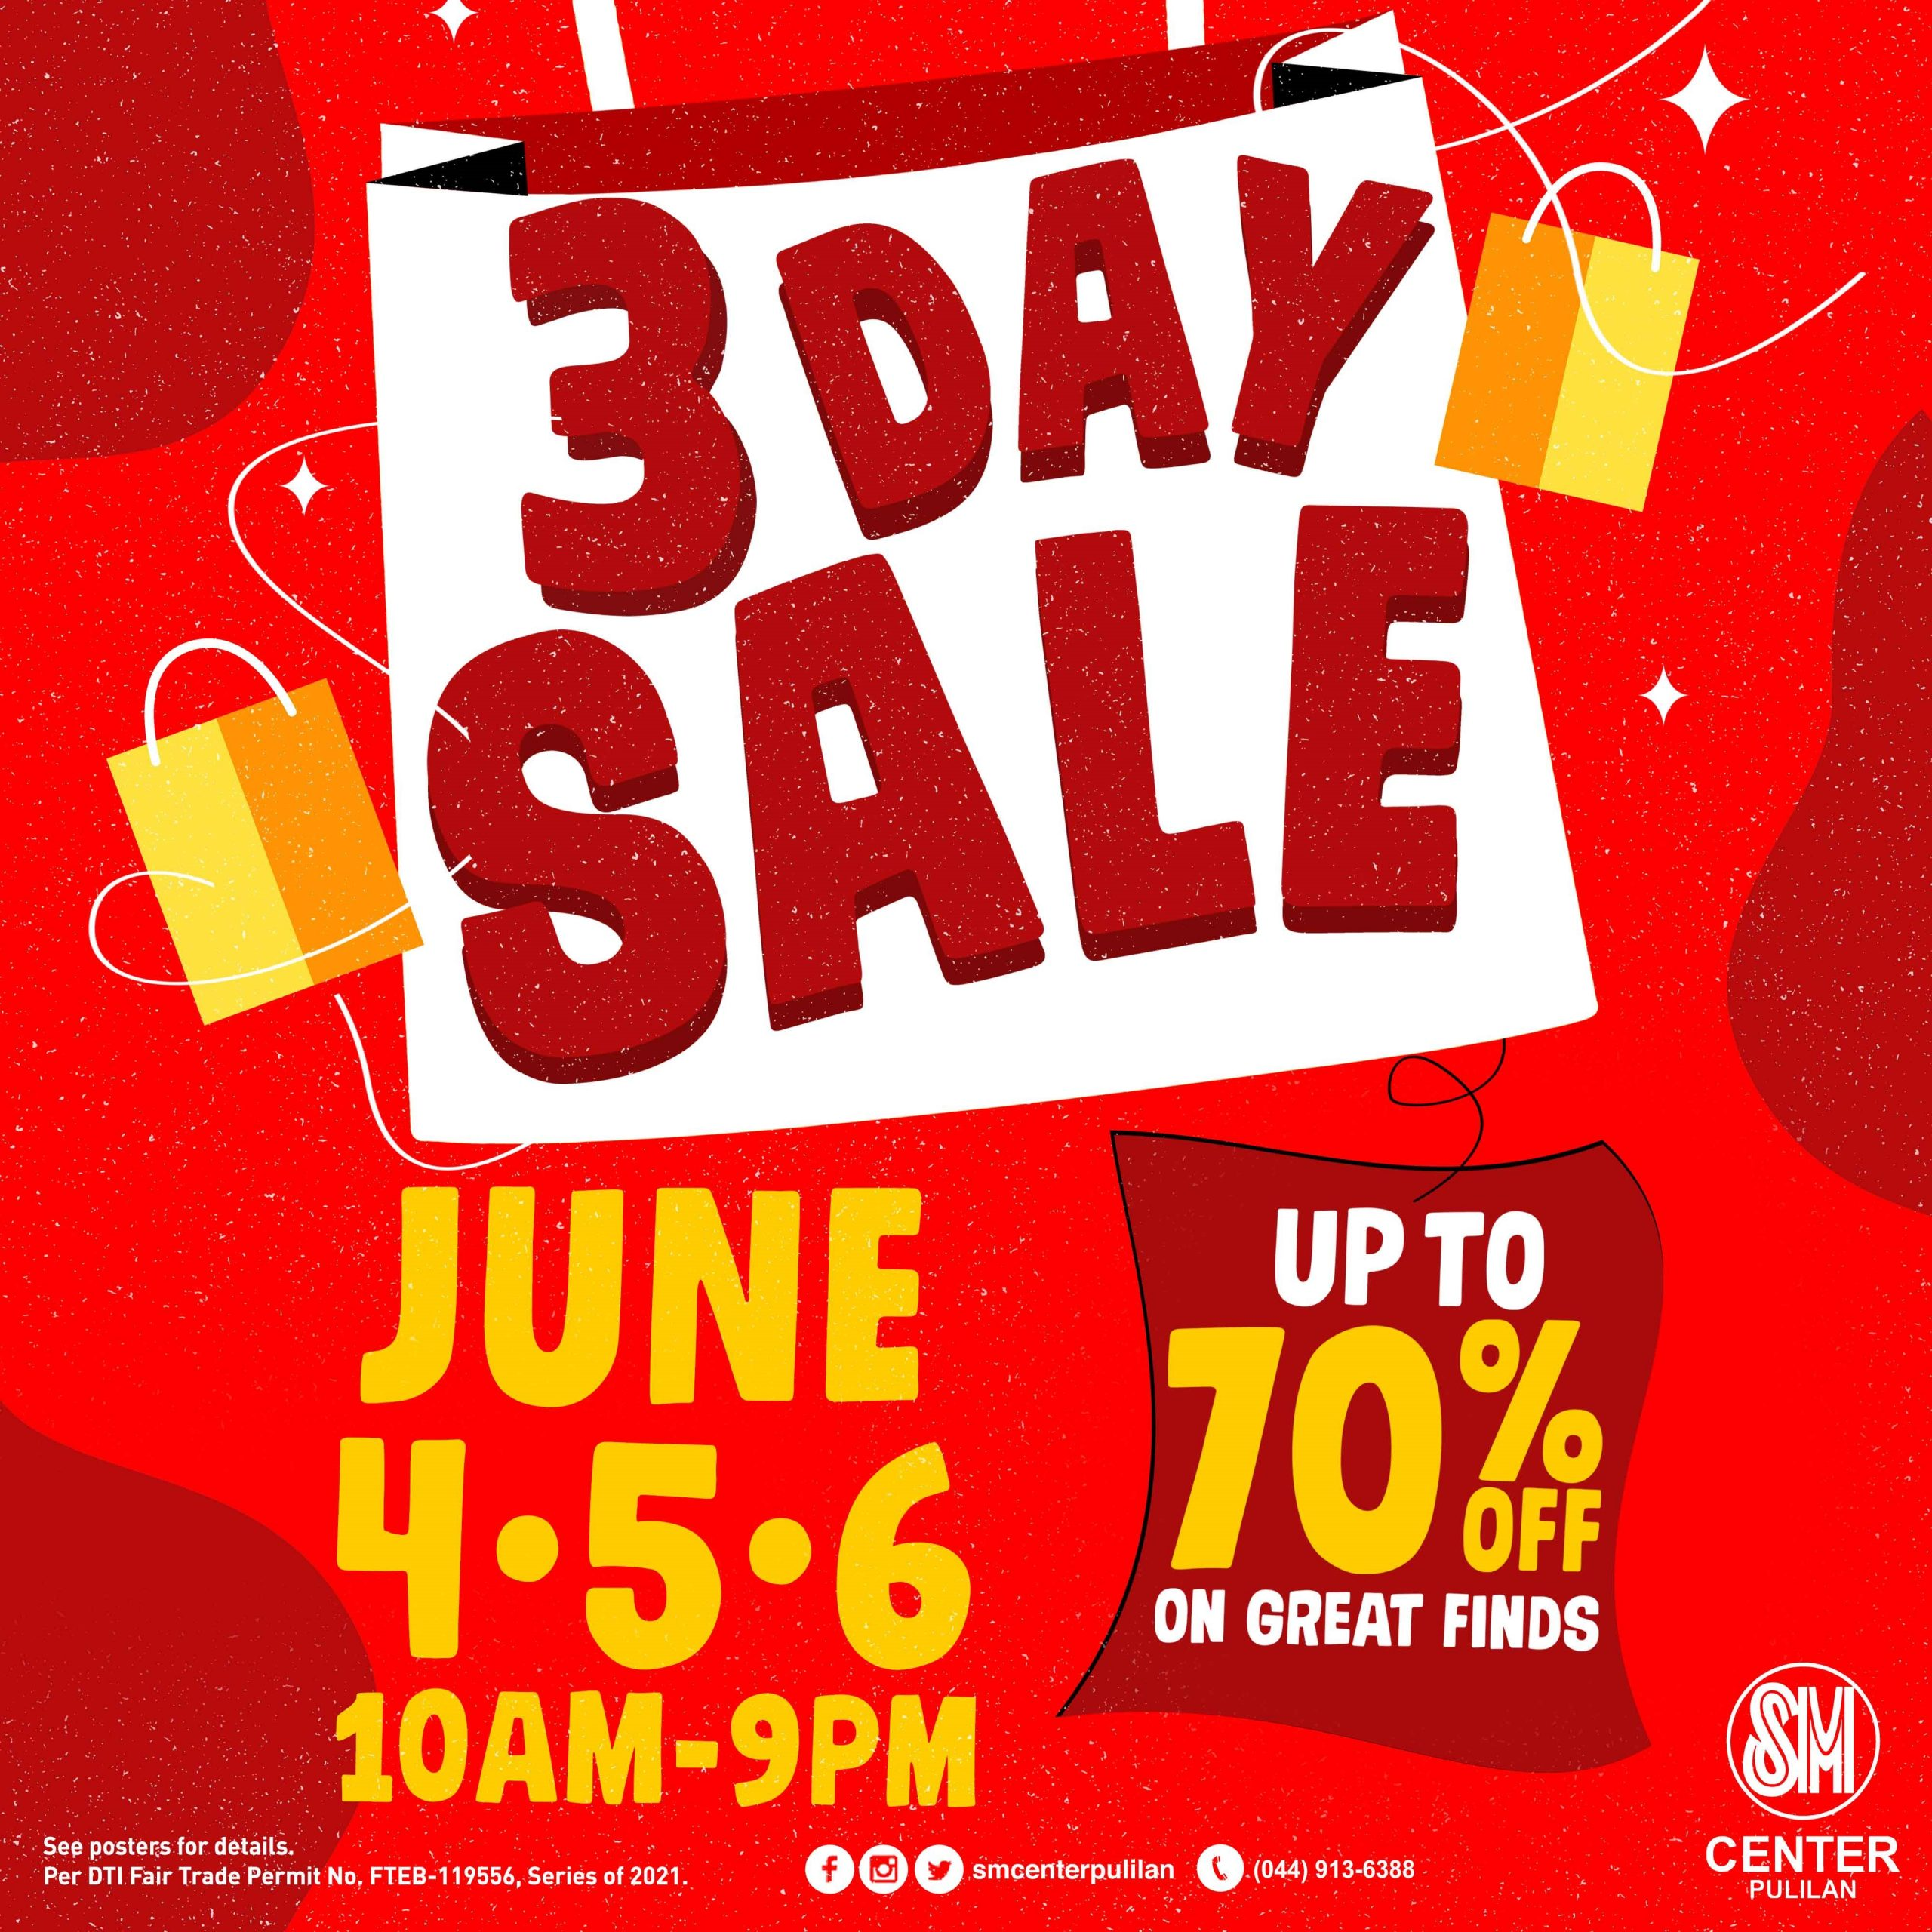 SM Center Pulilan officially welcomes June with a 3-day sale happening this June 4-6